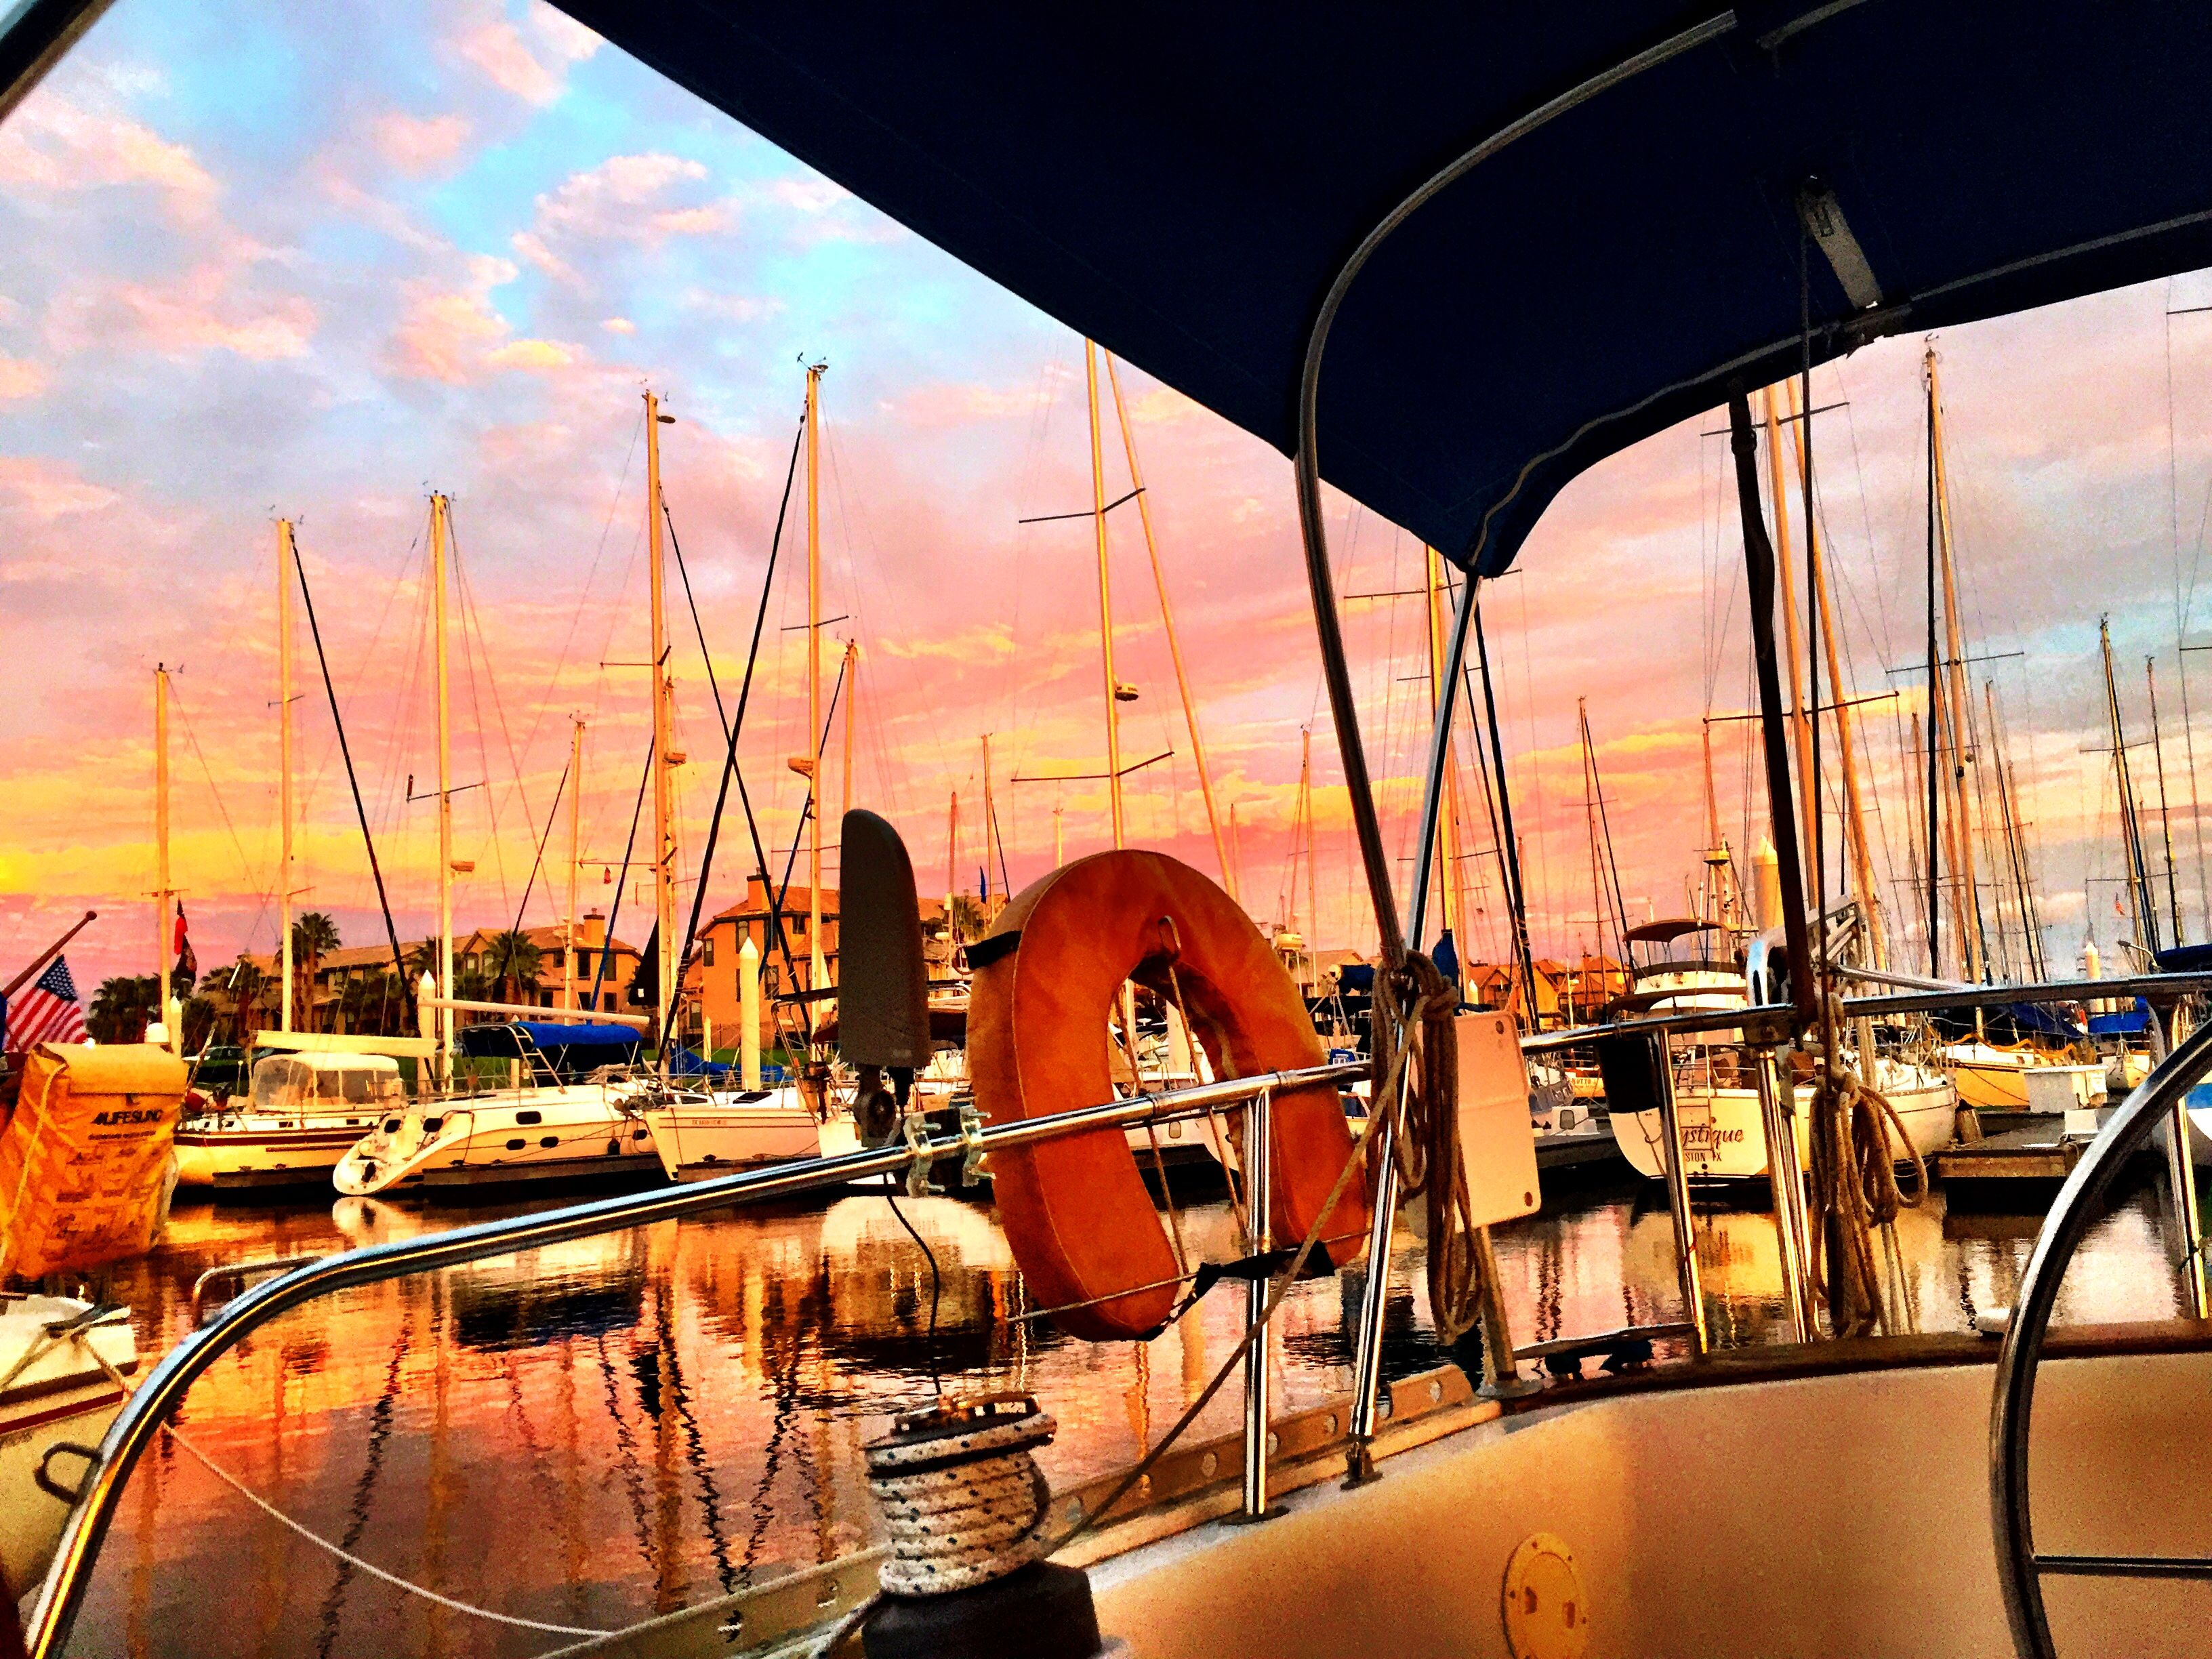 35 essentials for liveaboard cruisers - what to bring and